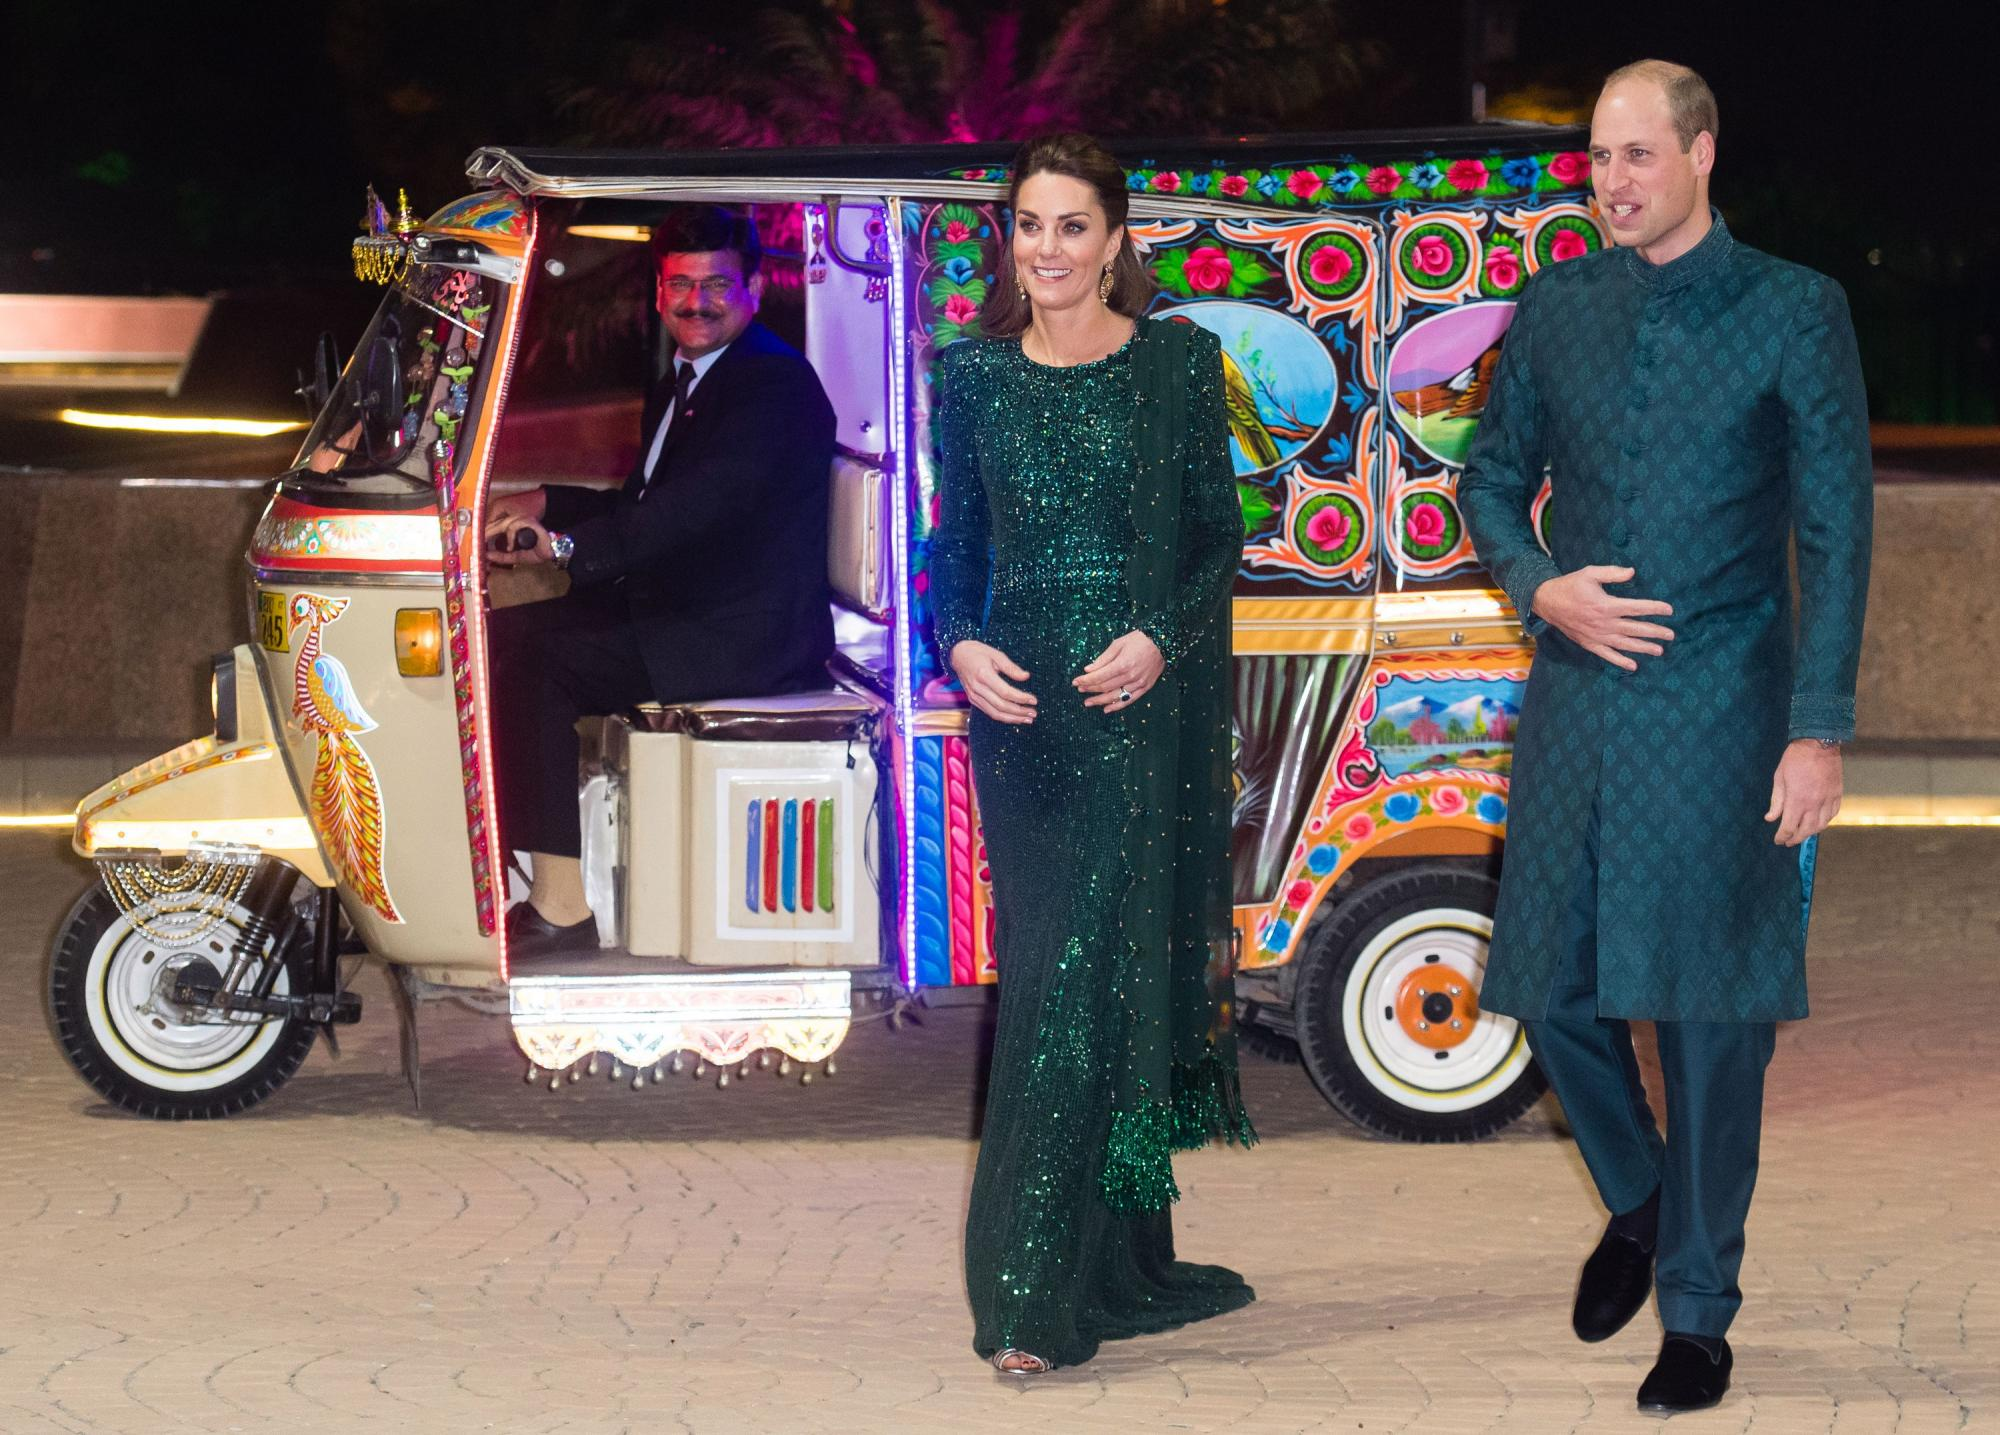 Prince William & Kate Middleton's Pakistan Tour